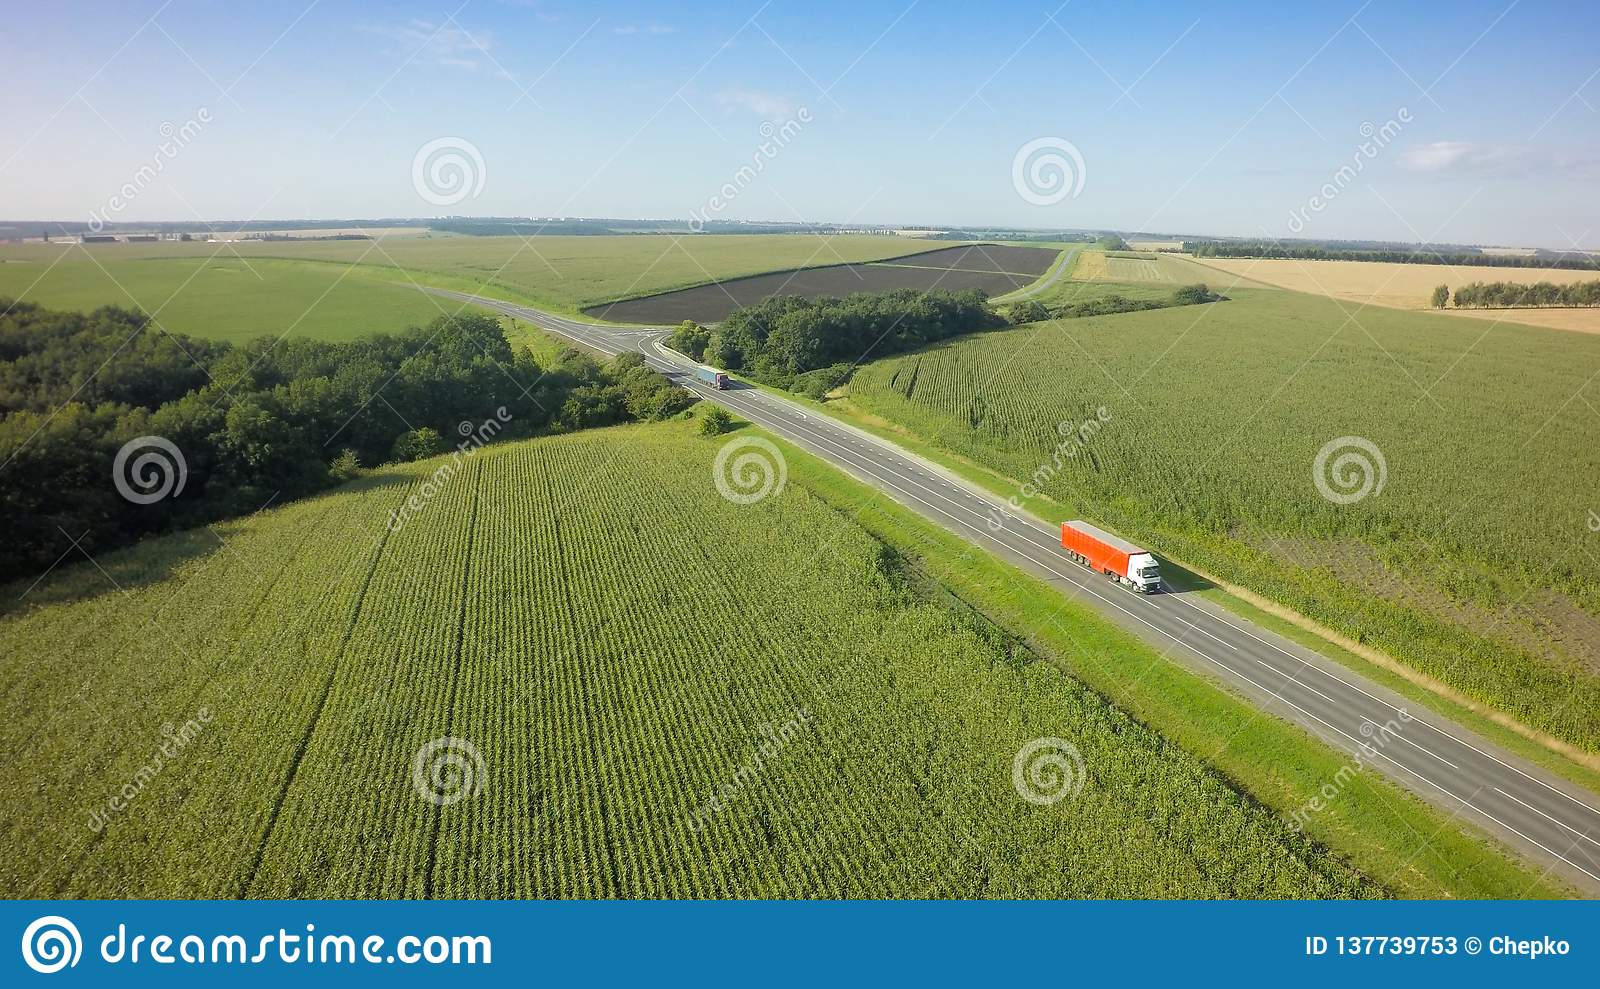 Aerial Top View of White Truck with Cargo Semi Trailer Moving on Road in Direction